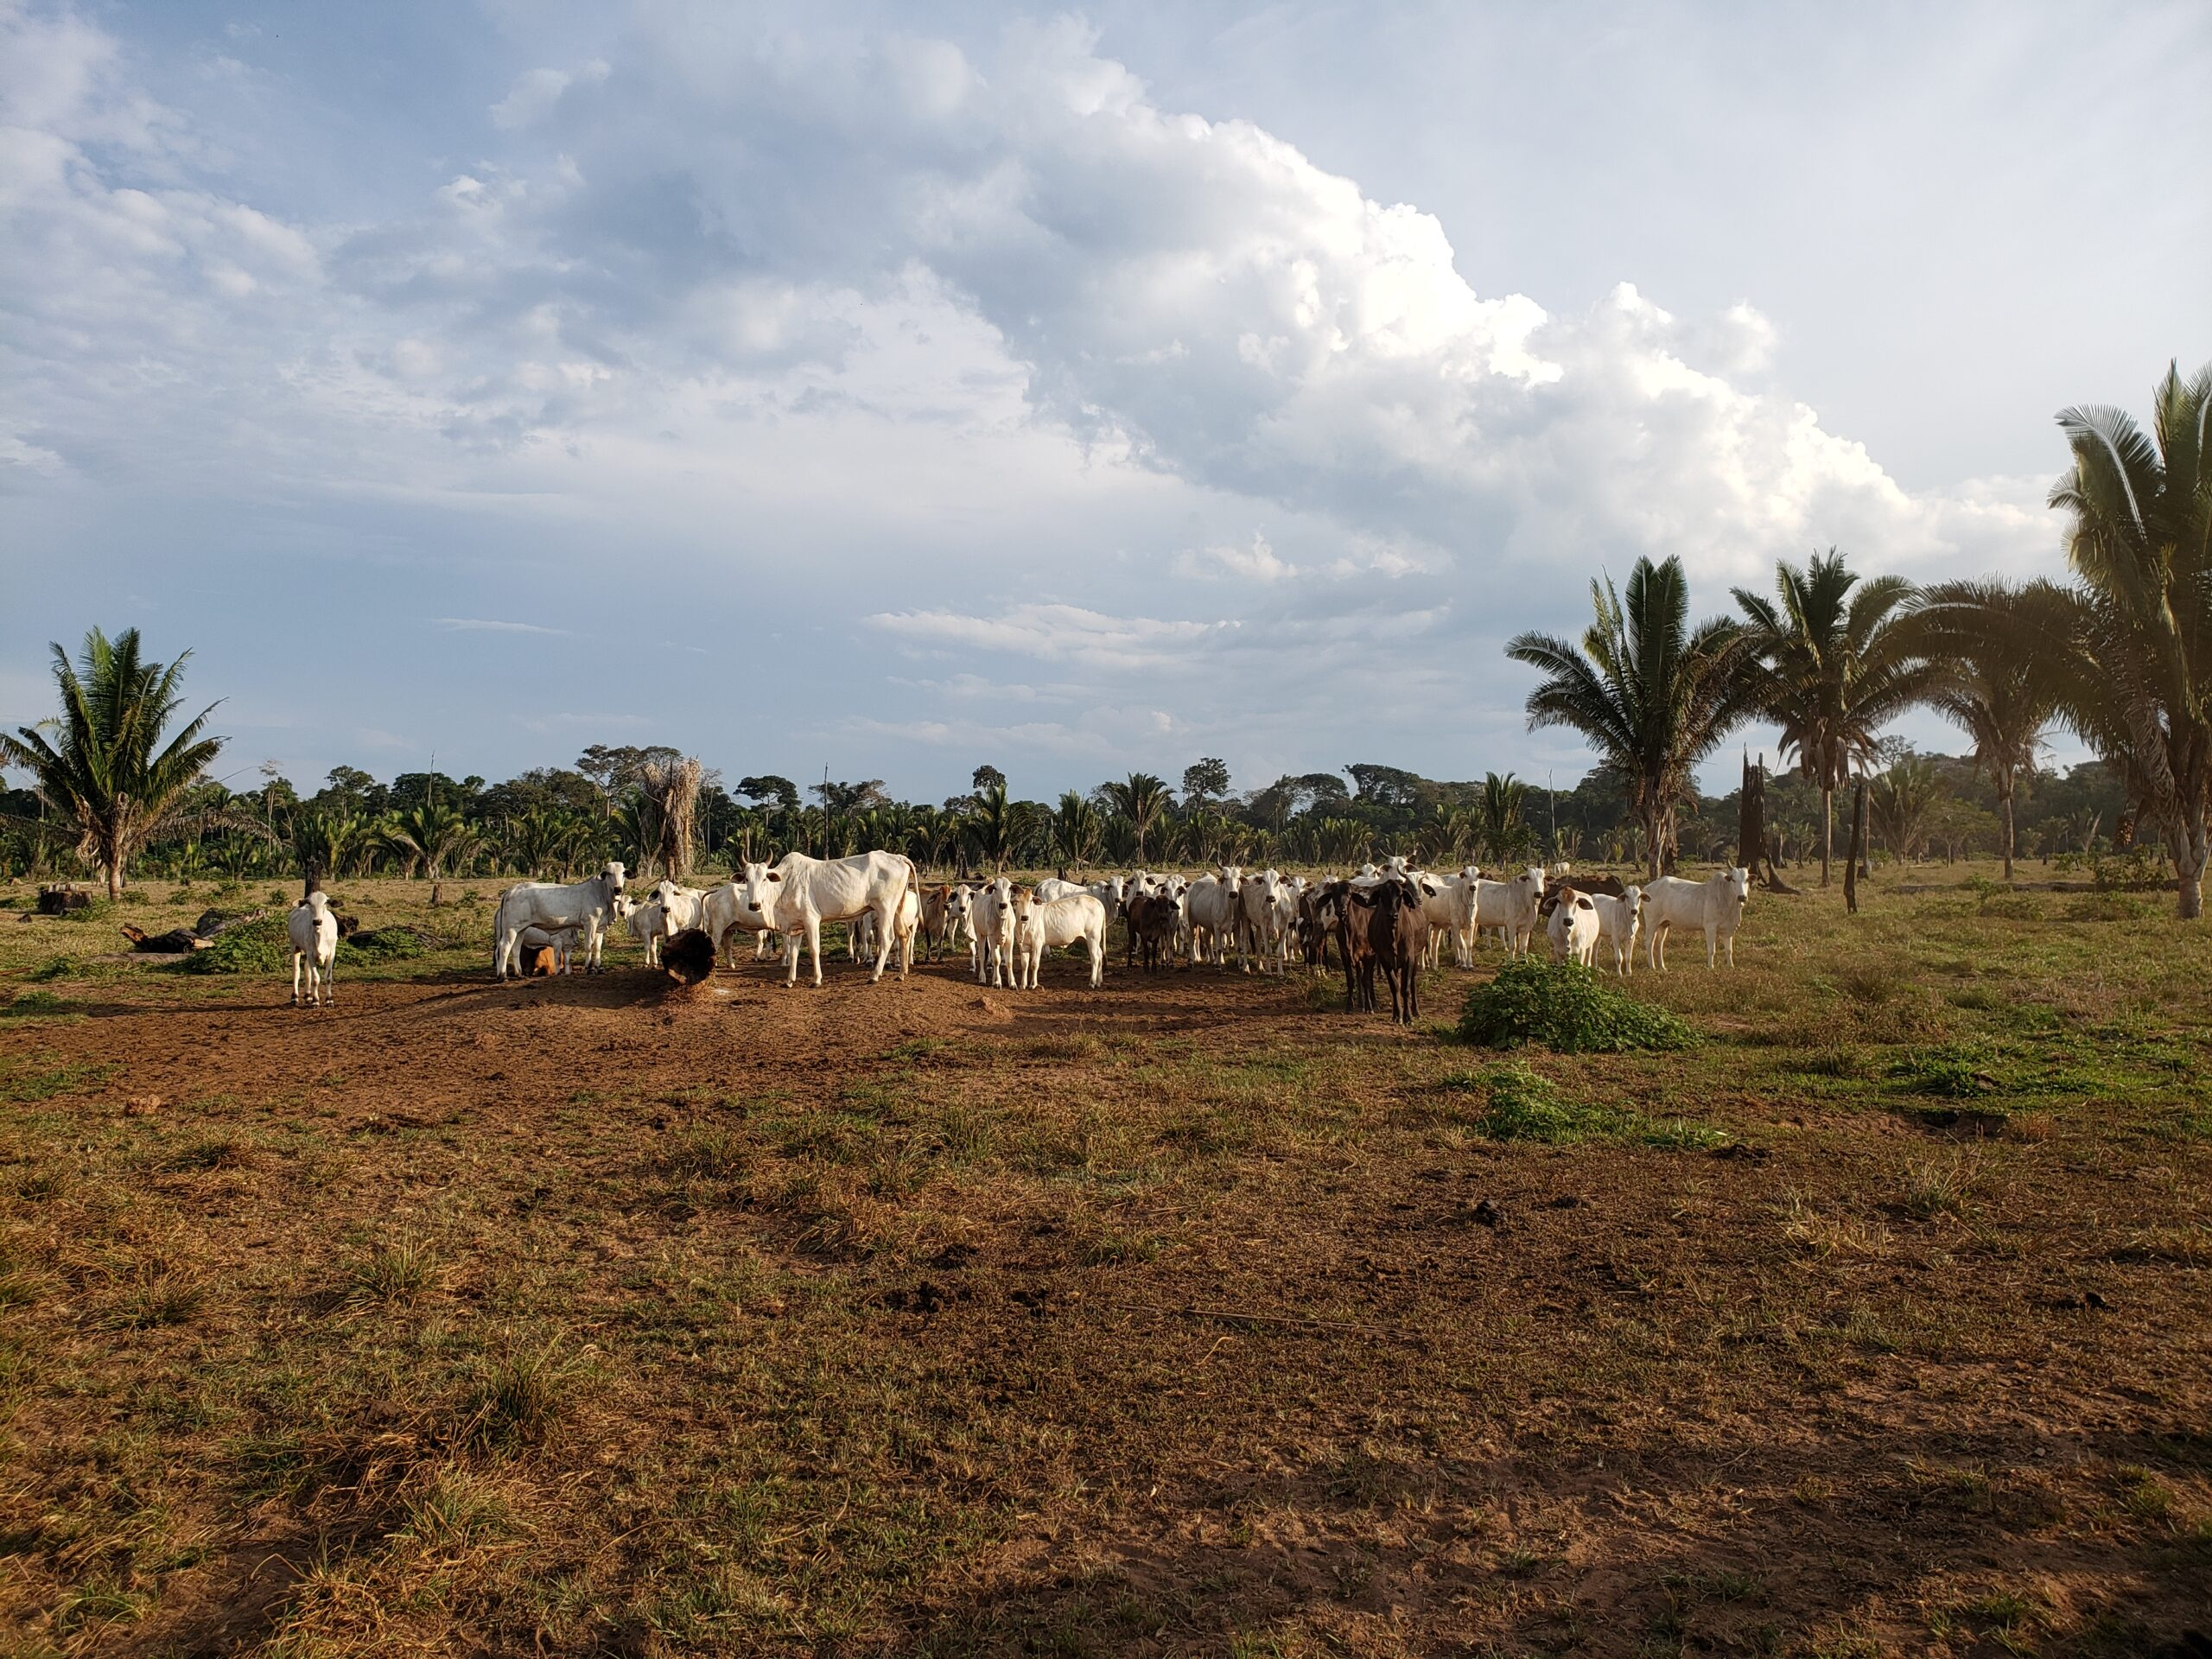 Brazil: Cattle illegally grazed in the Amazon found in supply chain of leading meat-packer JBS